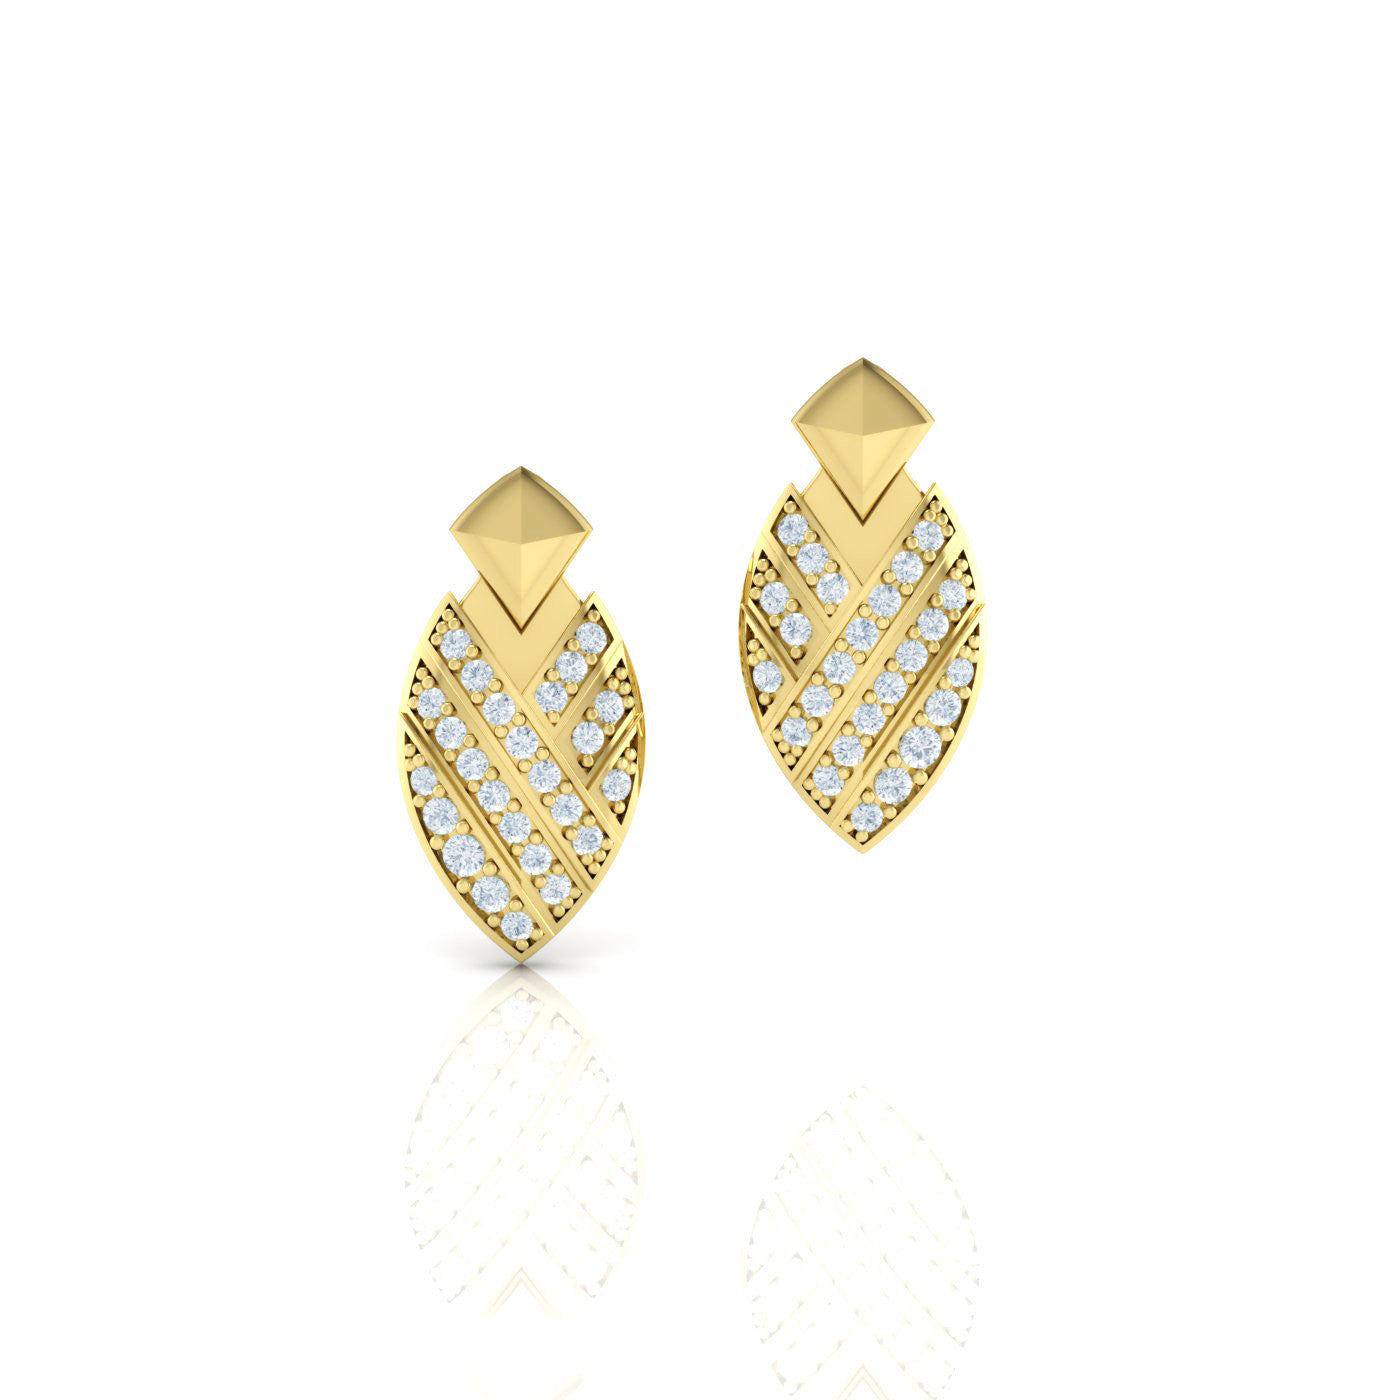 Diamond Earrings in 18kt Yellow Gold